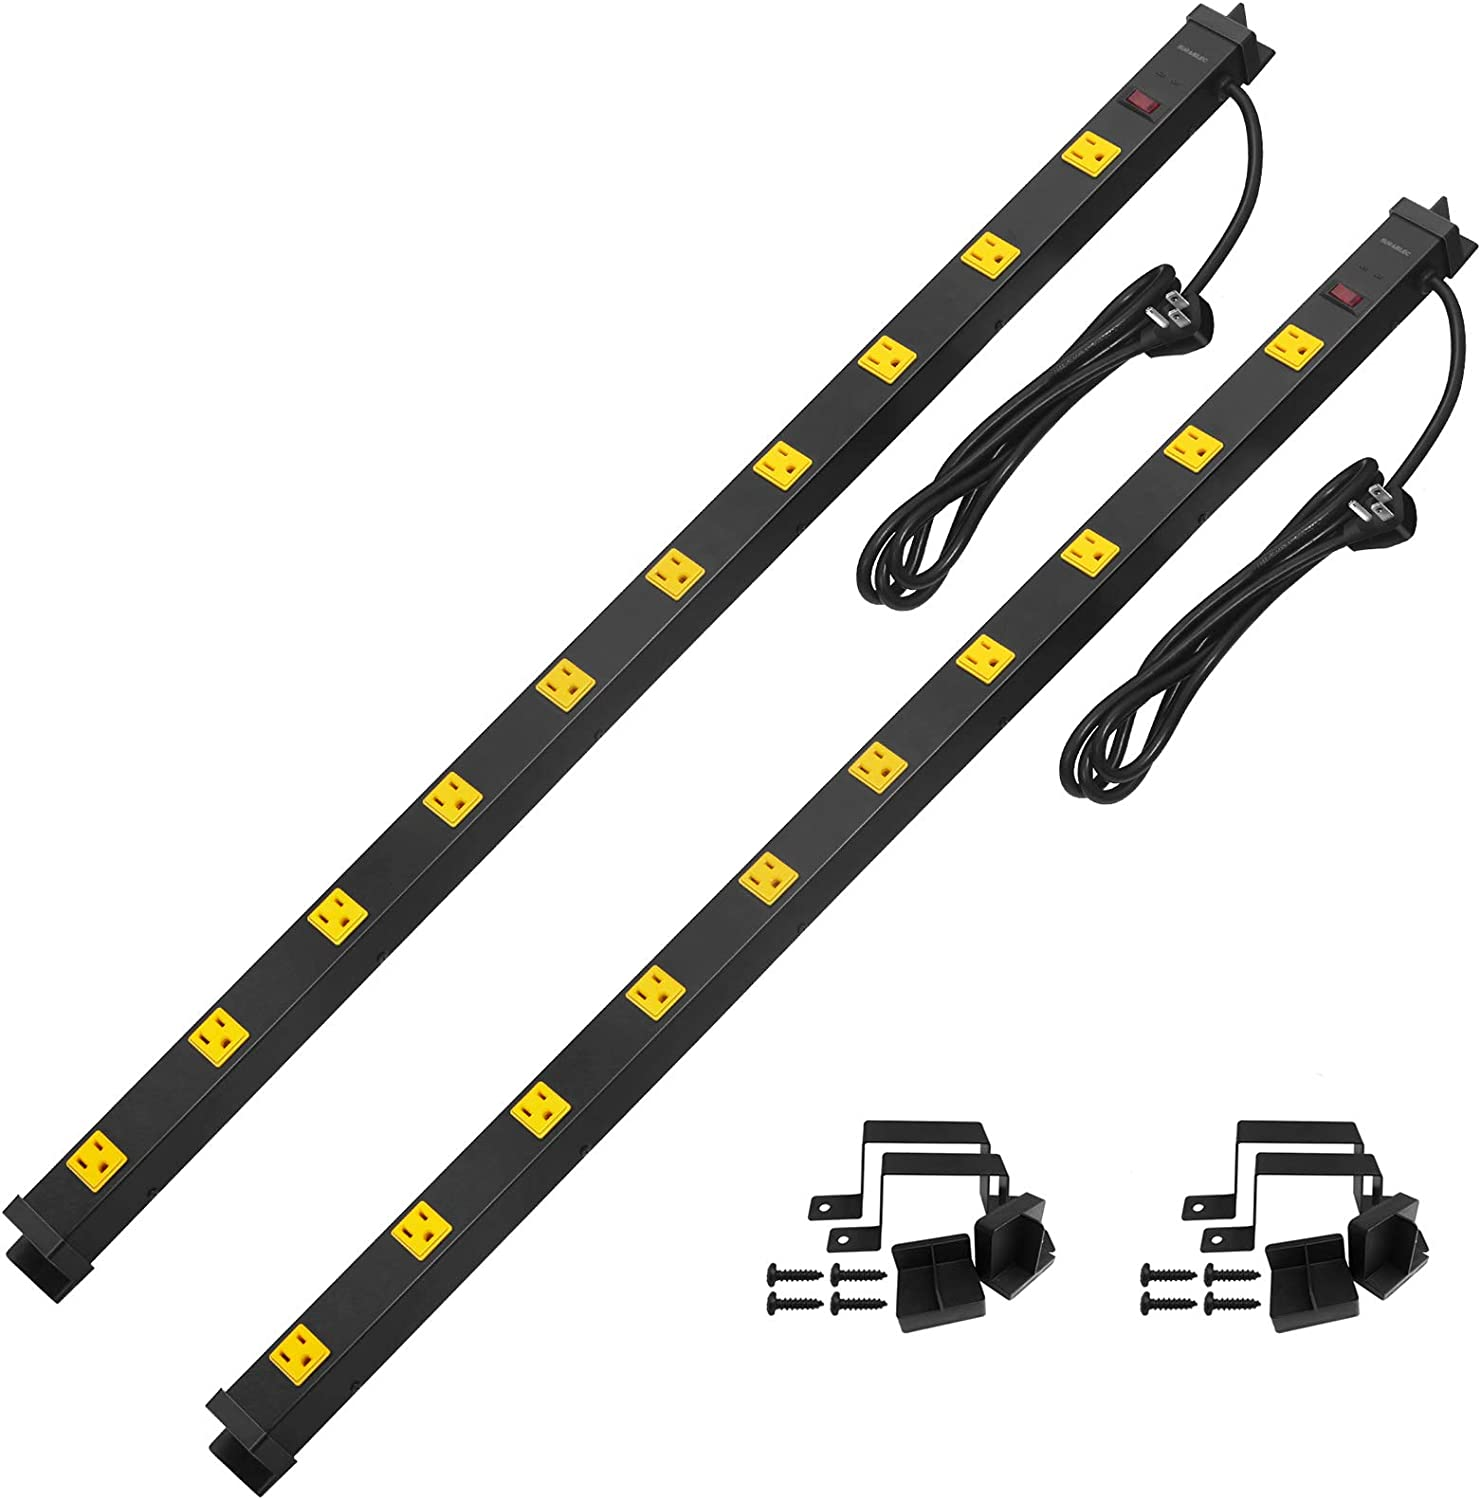 Suraielec 2-Pack 10 Outlet Long Power Strip Surge Protector, Industrial Heavy Duty Metal Shop Power Strip Flat Plug, 1000 Joules, 15 A Breaker, 6FT Cord, Wall Mountable, for Work Bench, Shop, Garage…